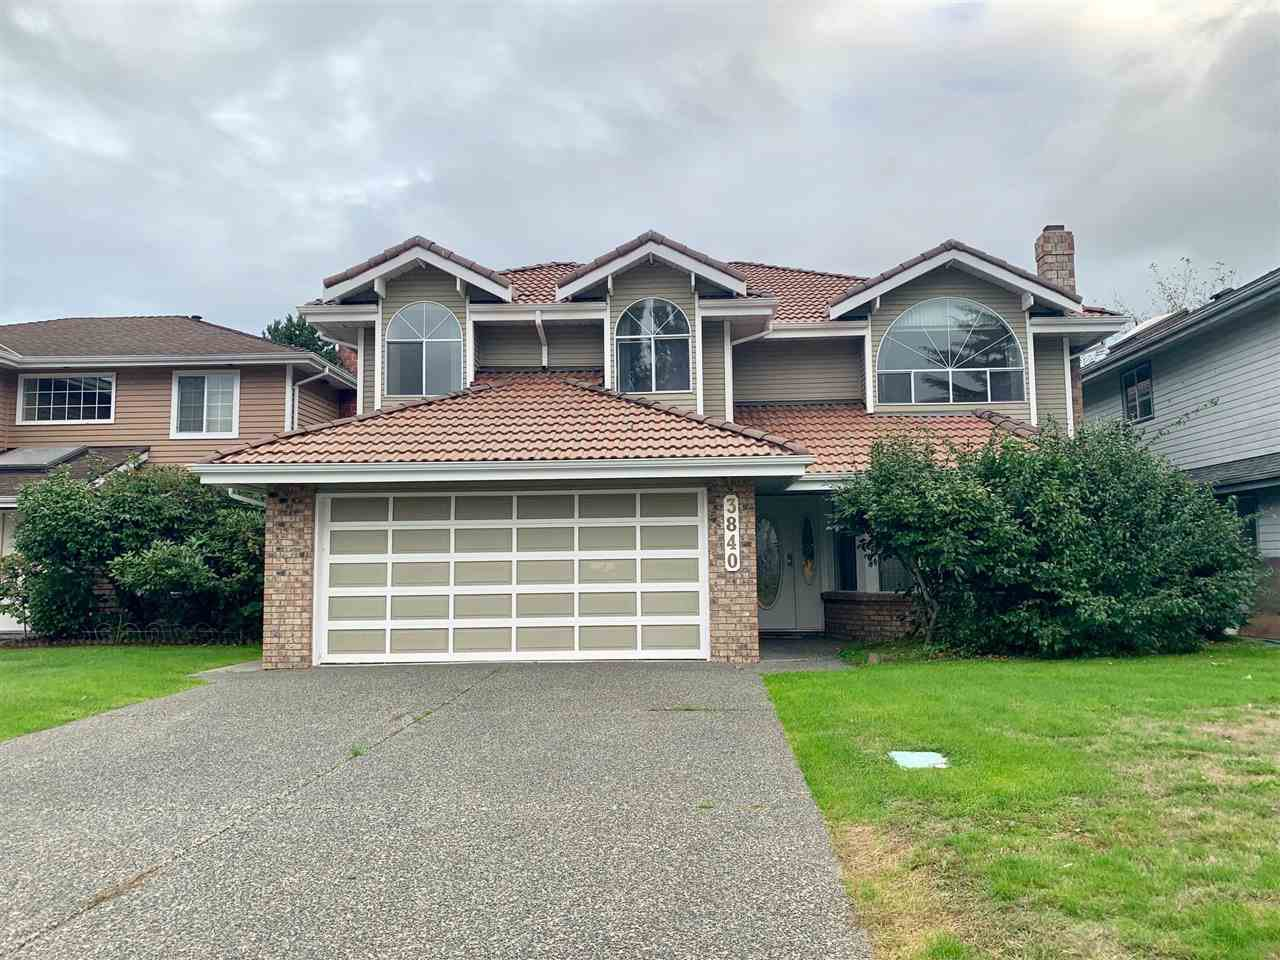 Main Photo: 3840 SCOTSDALE Place in Richmond: Steveston North House for sale : MLS®# R2409065